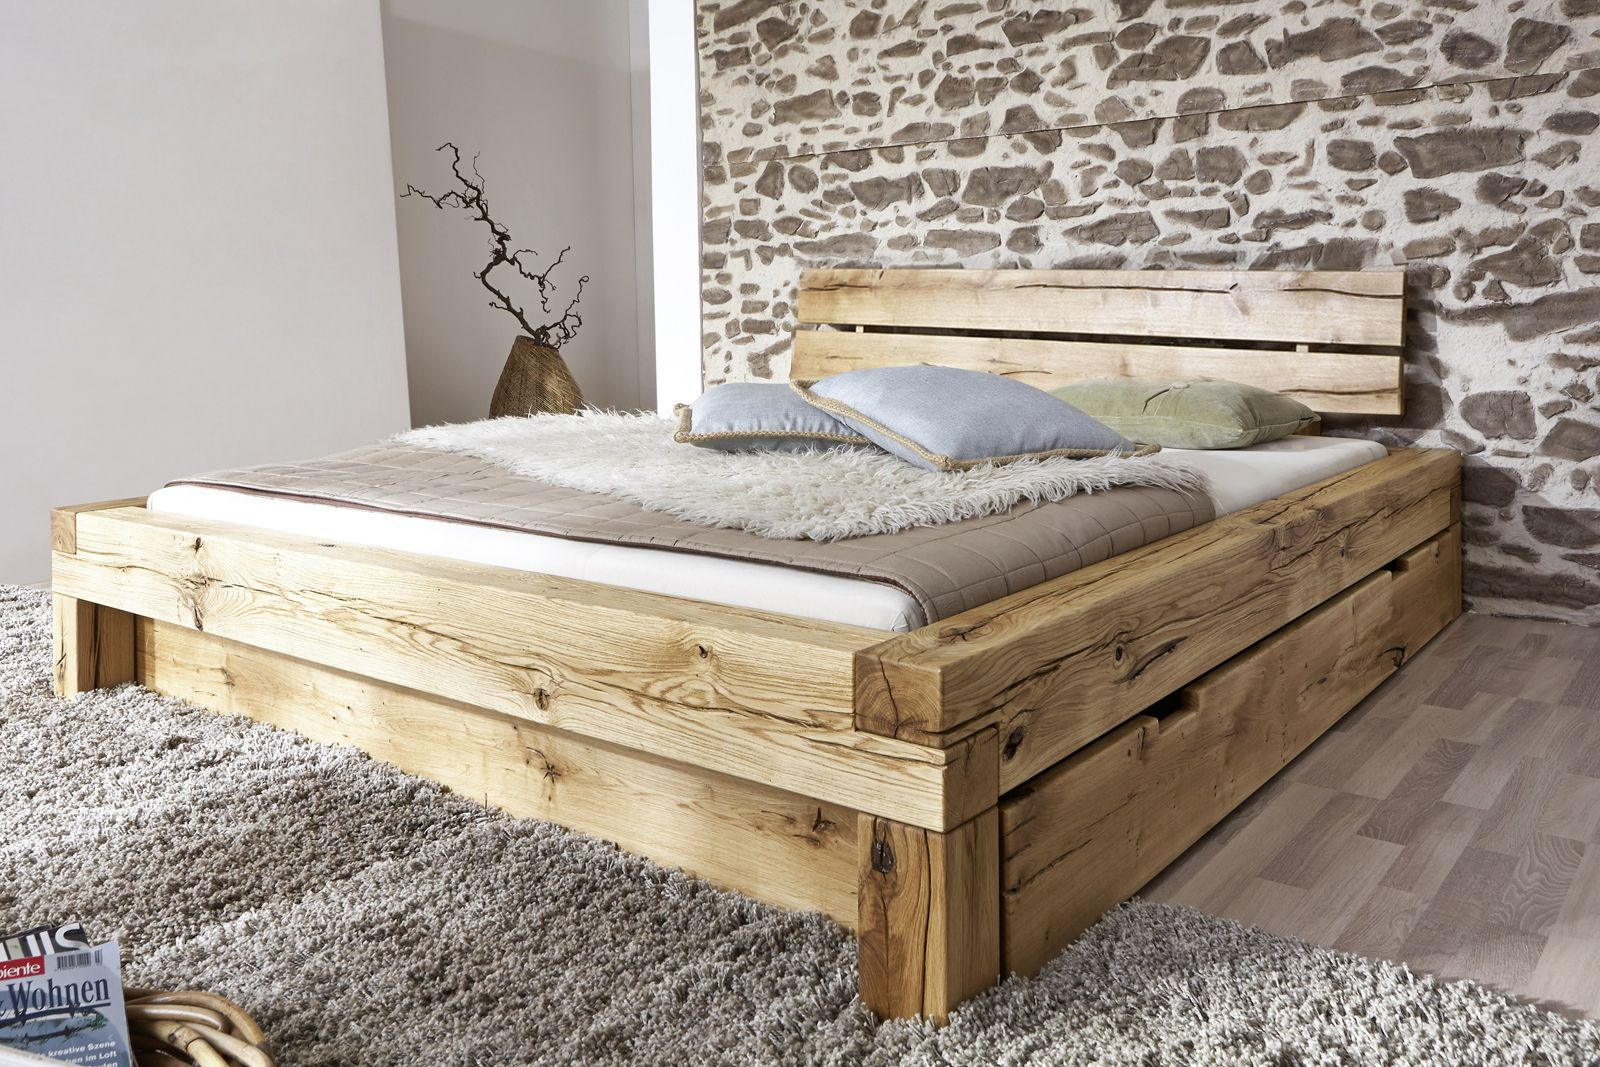 1000+ ideas about Holzbett 160x200 on Pinterest  Bettkasten ...